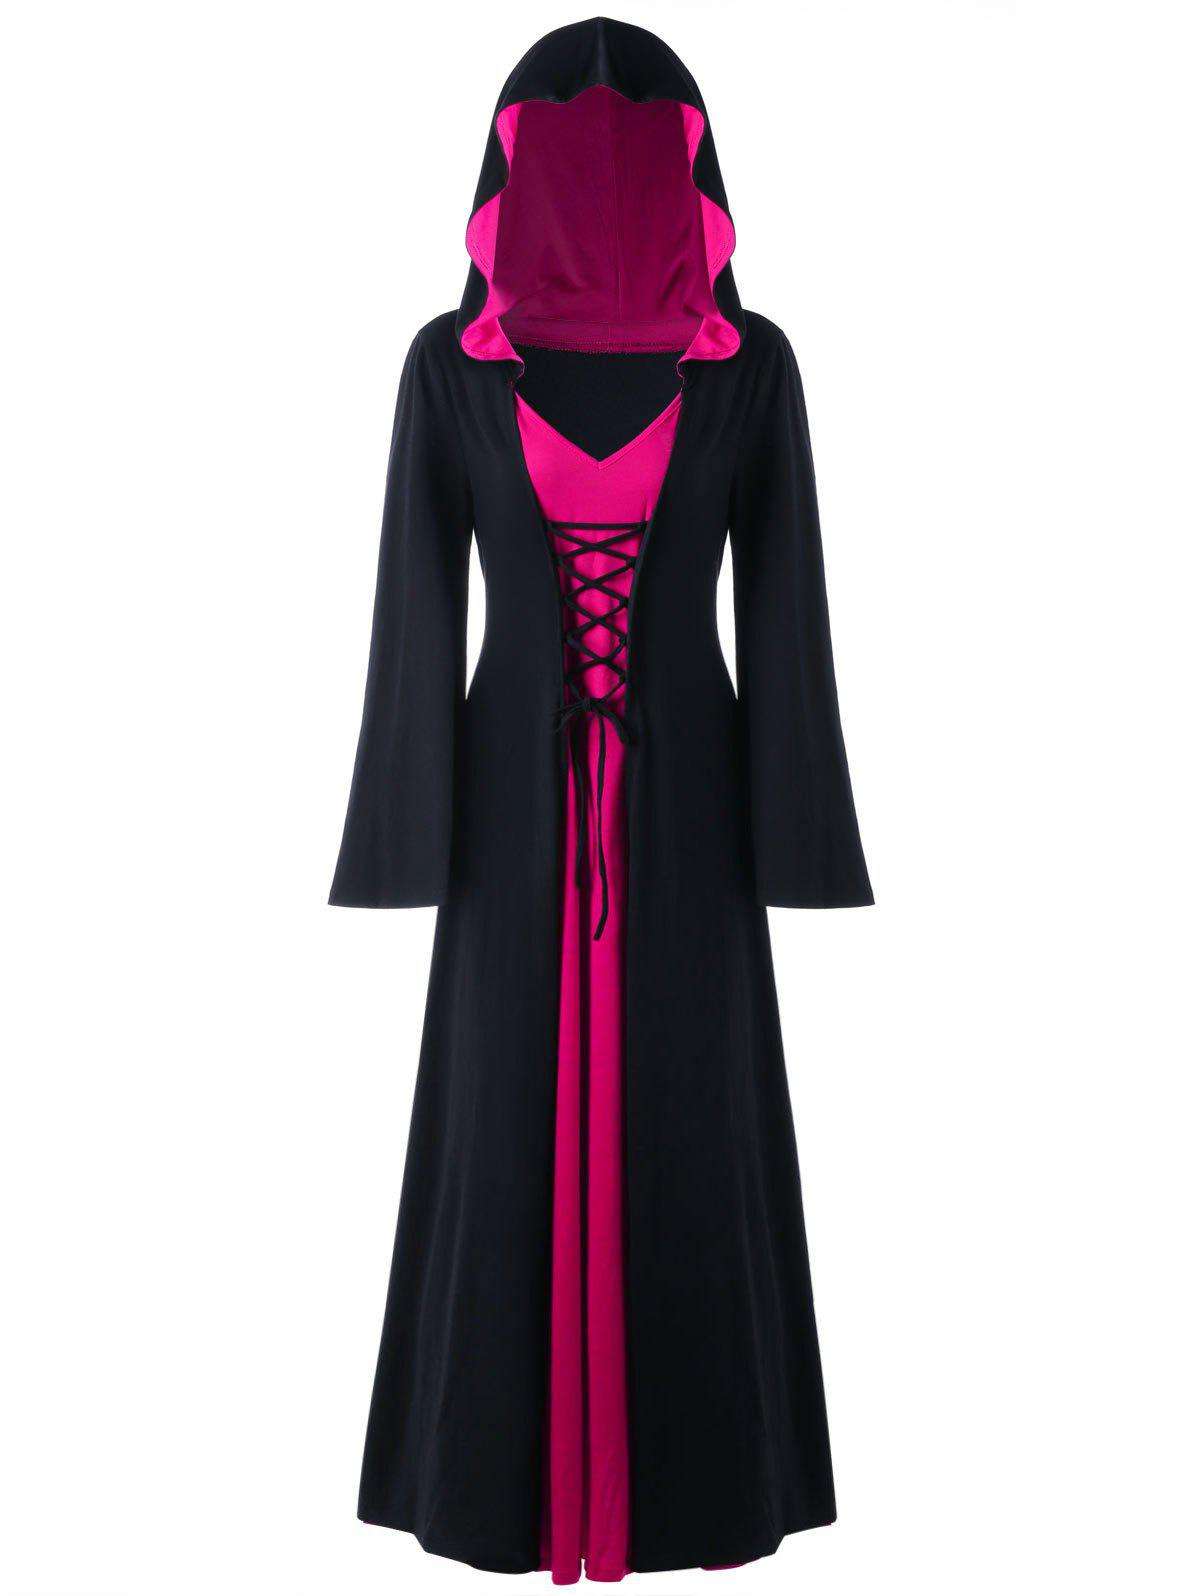 Halloween Plus Size Lace Up Hooded Maxi DressWOMEN<br><br>Size: 5XL; Color: BLACK + ROSE; Style: Novelty; Material: Polyester,Spandex; Silhouette: A-Line; Dresses Length: Ankle-Length; Neckline: Hooded; Sleeve Length: Long Sleeves; Pattern Type: Solid; With Belt: No; Season: Fall,Spring; Weight: 0.6700kg; Package Contents: 1 x Dress;